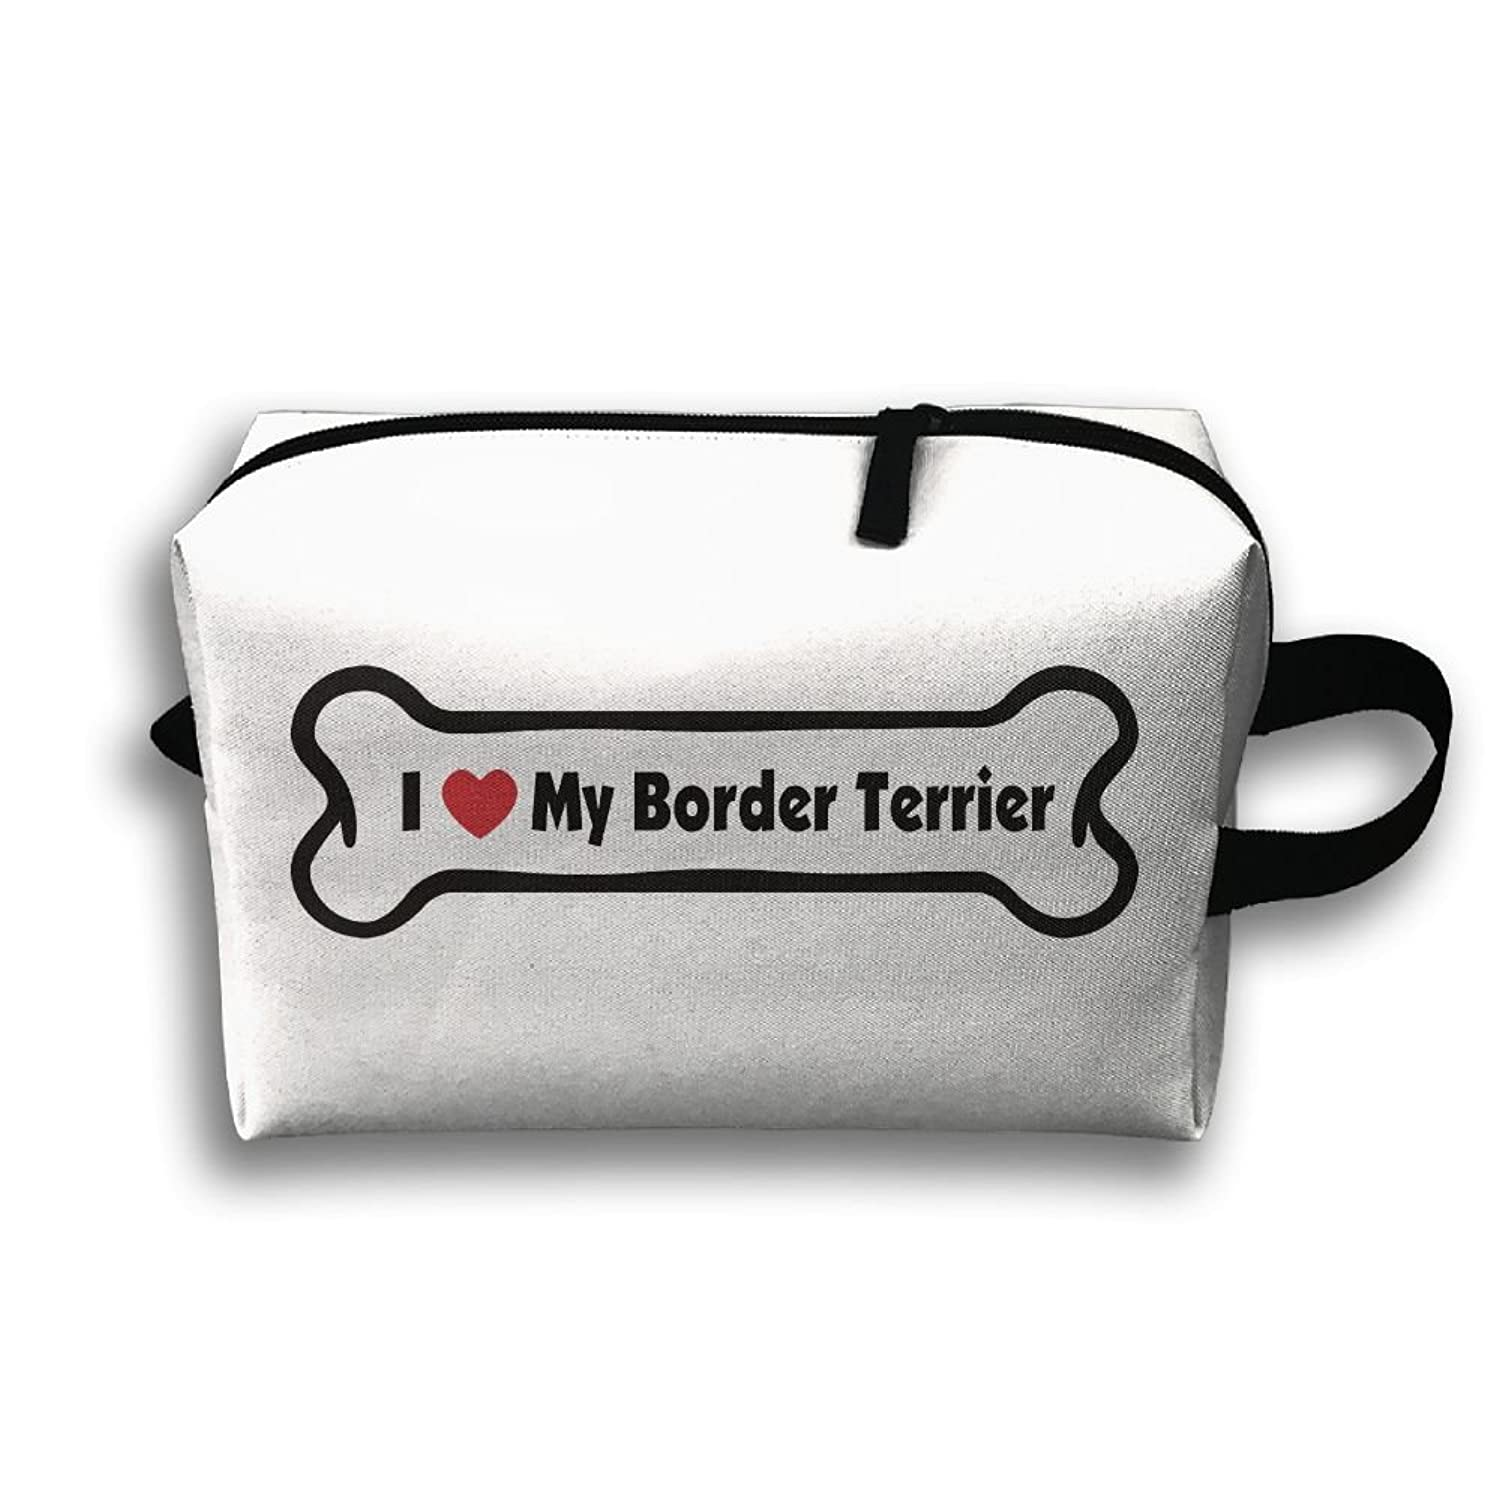 Storage Bag Travel Pouch I Love My Border Terrier Purse Organizer Power Bank Data Wire Cosmetic Stationery Holder